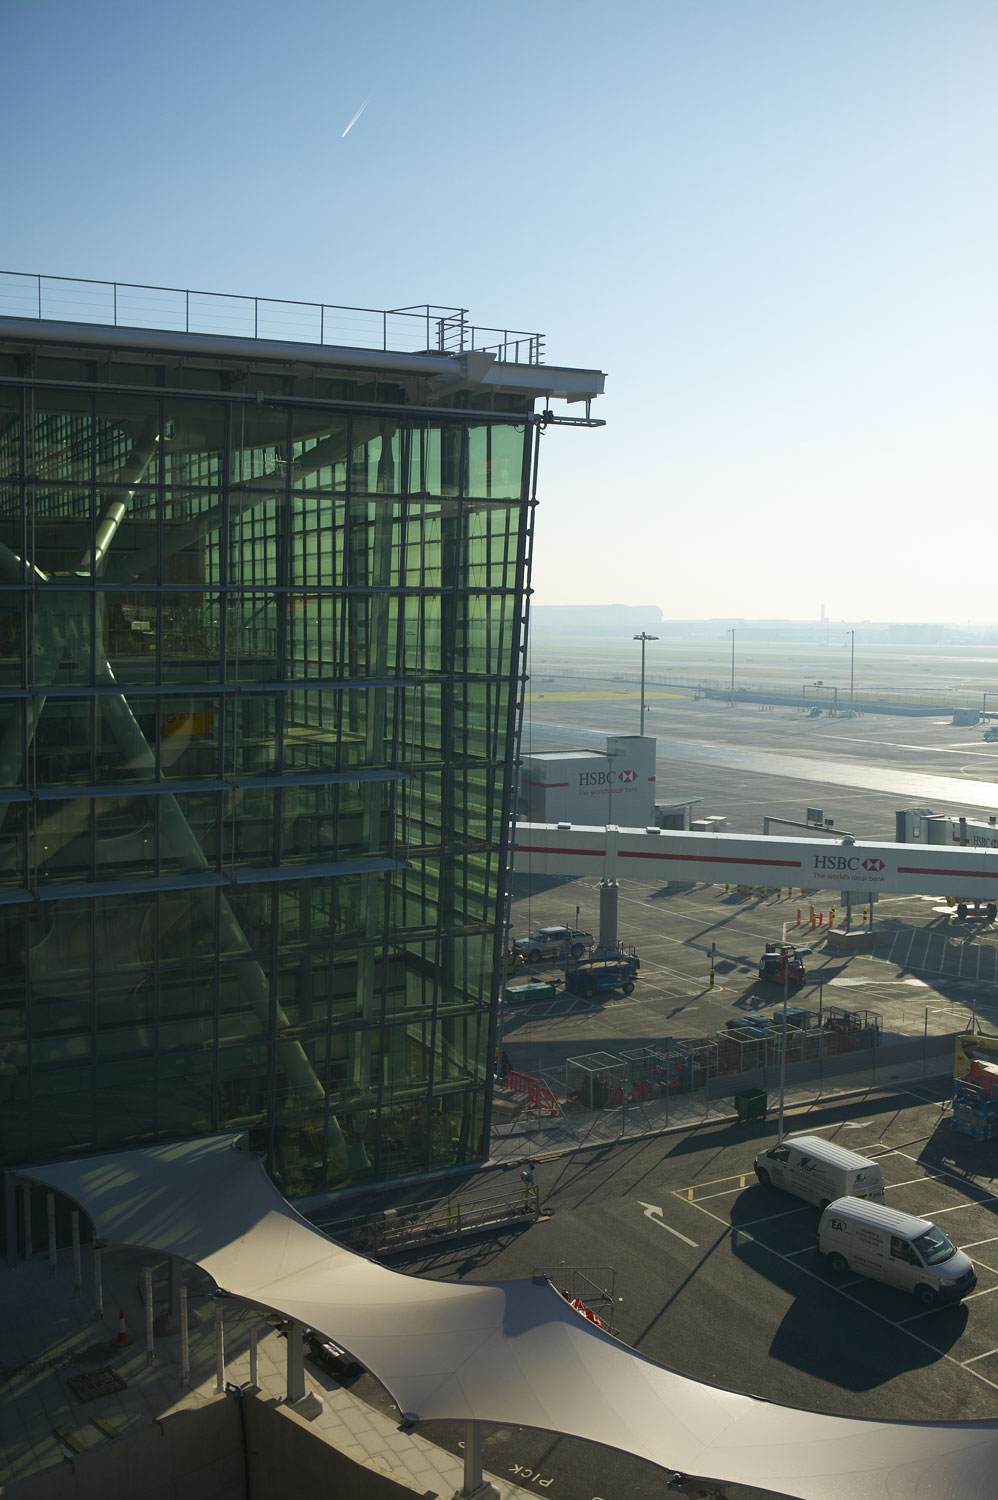 Heathrow Airport Terminal 5 glazed facade and apron | Commercial Building Photographer | Commercial Photography